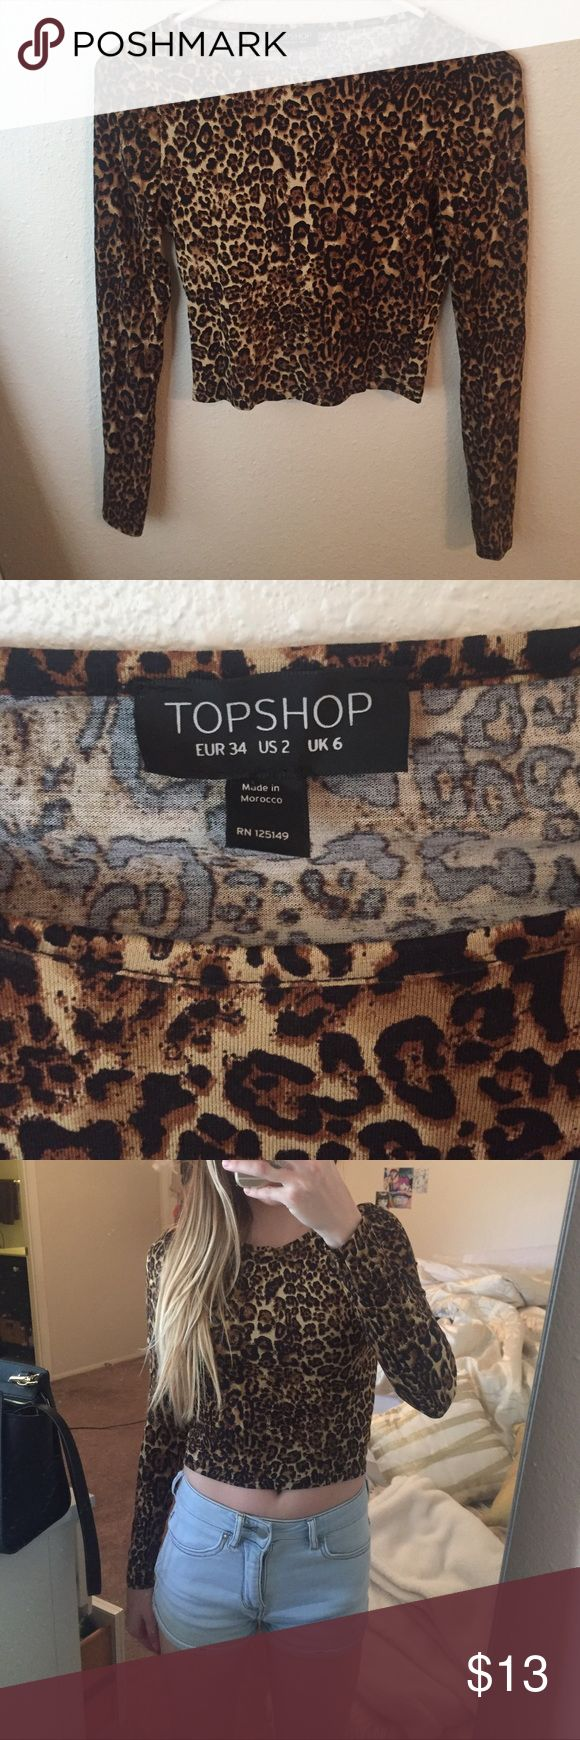 Cheetah Print Shirt🐾 Super cute cheetah Print Shirt! Is made with super soft material, long sleeves, and is slightly cropped! Definitely true to size! Size is in comparison to an XS. Never worn. ‼️BUNDLE and save 15%‼️ Topshop Tops Tees - Long Sleeve